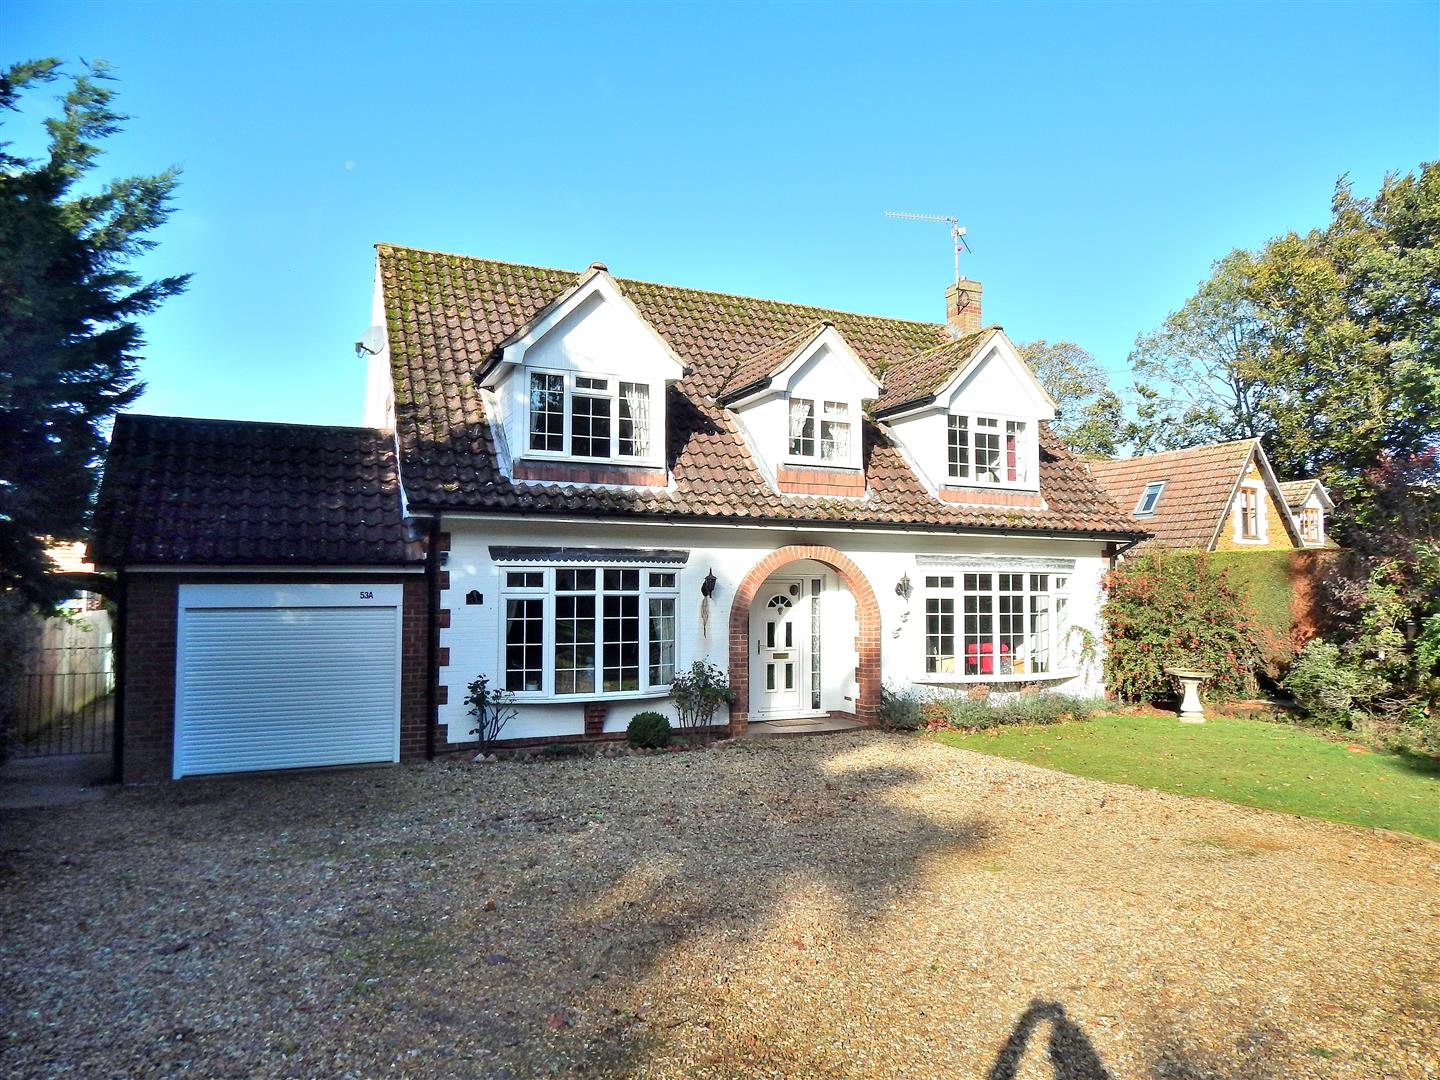 4 bed detached house for sale in Hunstanton Road, King's Lynn  - Property Image 1